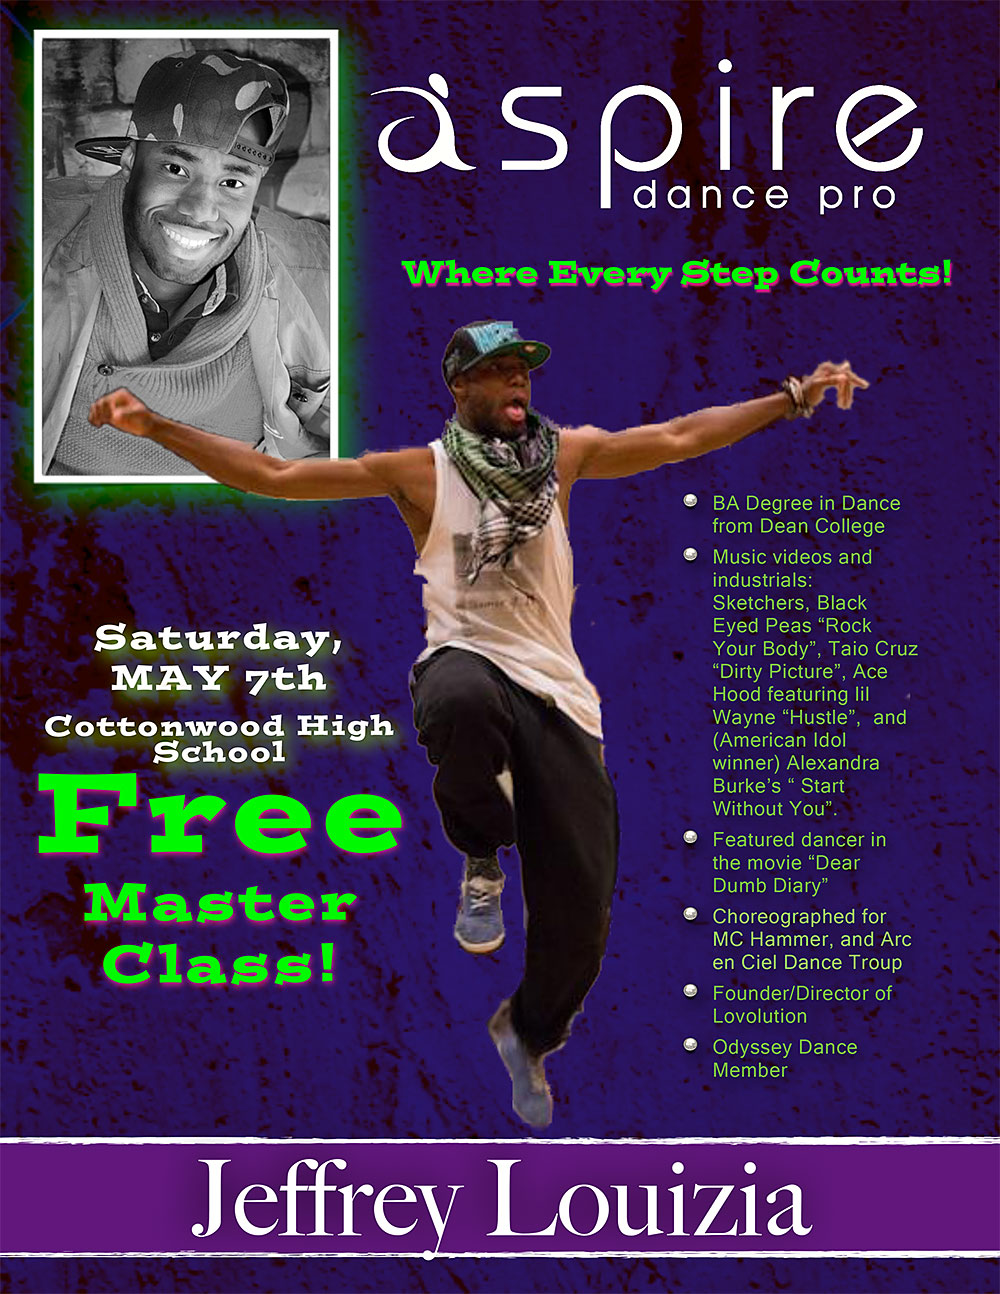 Jeffrey Louizia - Aspire Dance Pro Competitions Masterclass Instructor